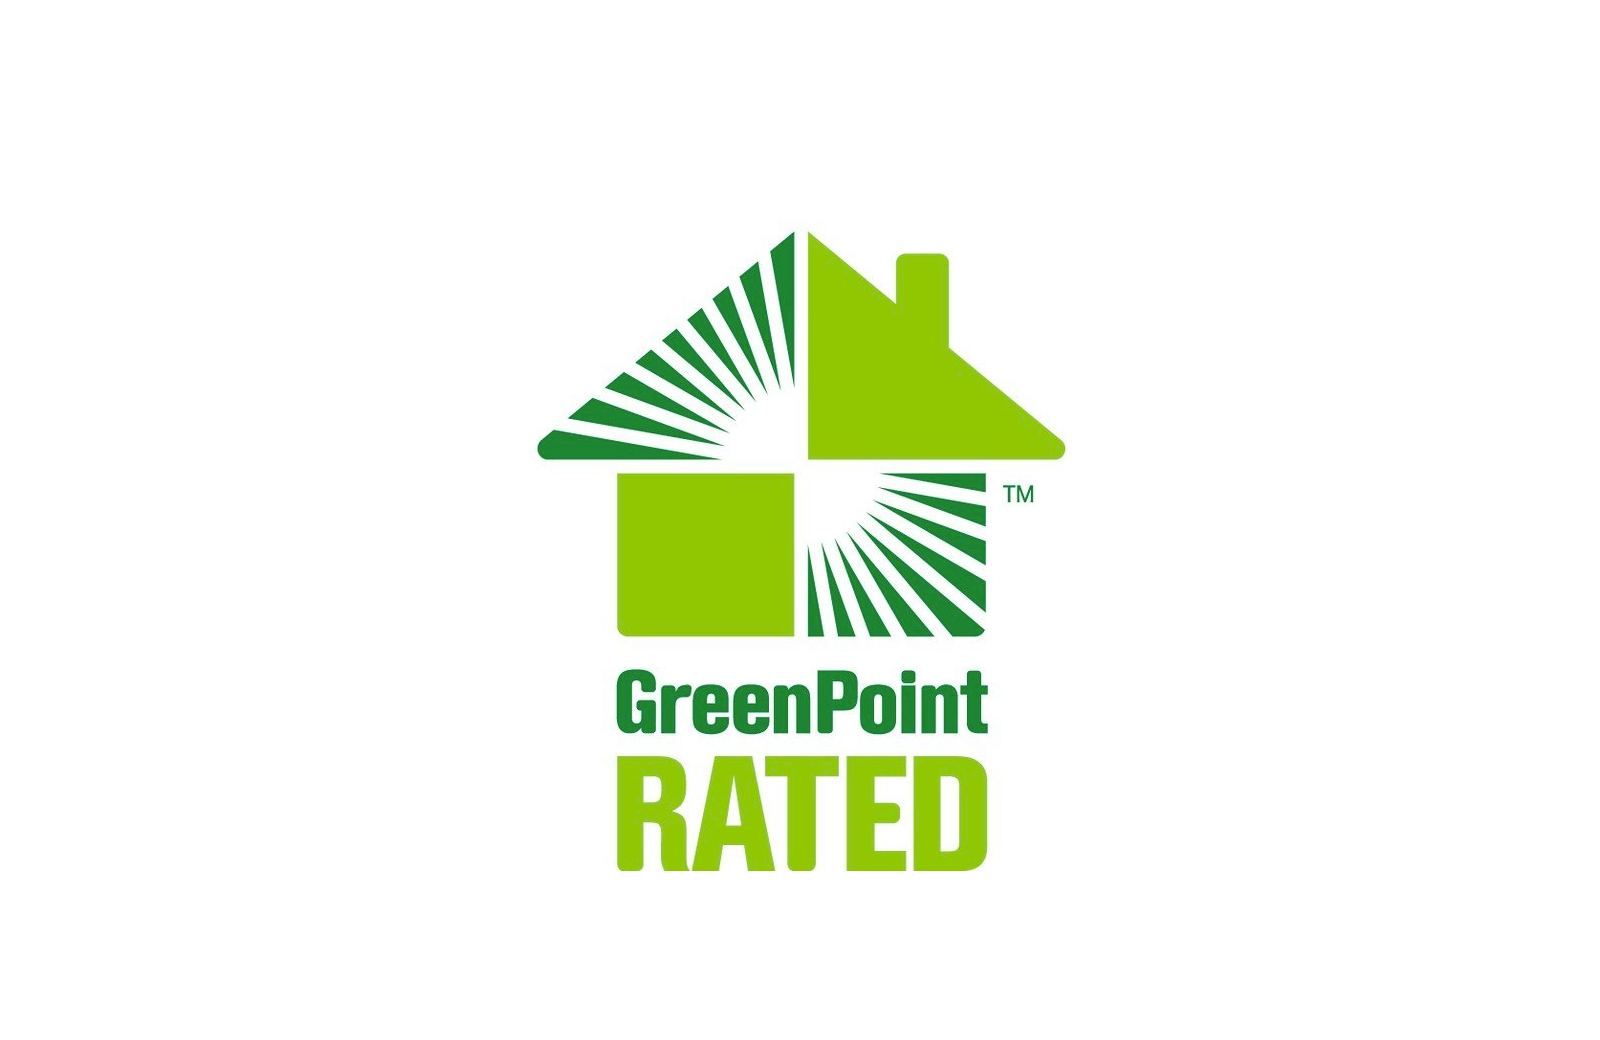 Eighth & Grand is Awarded the GreenPoint Certificate